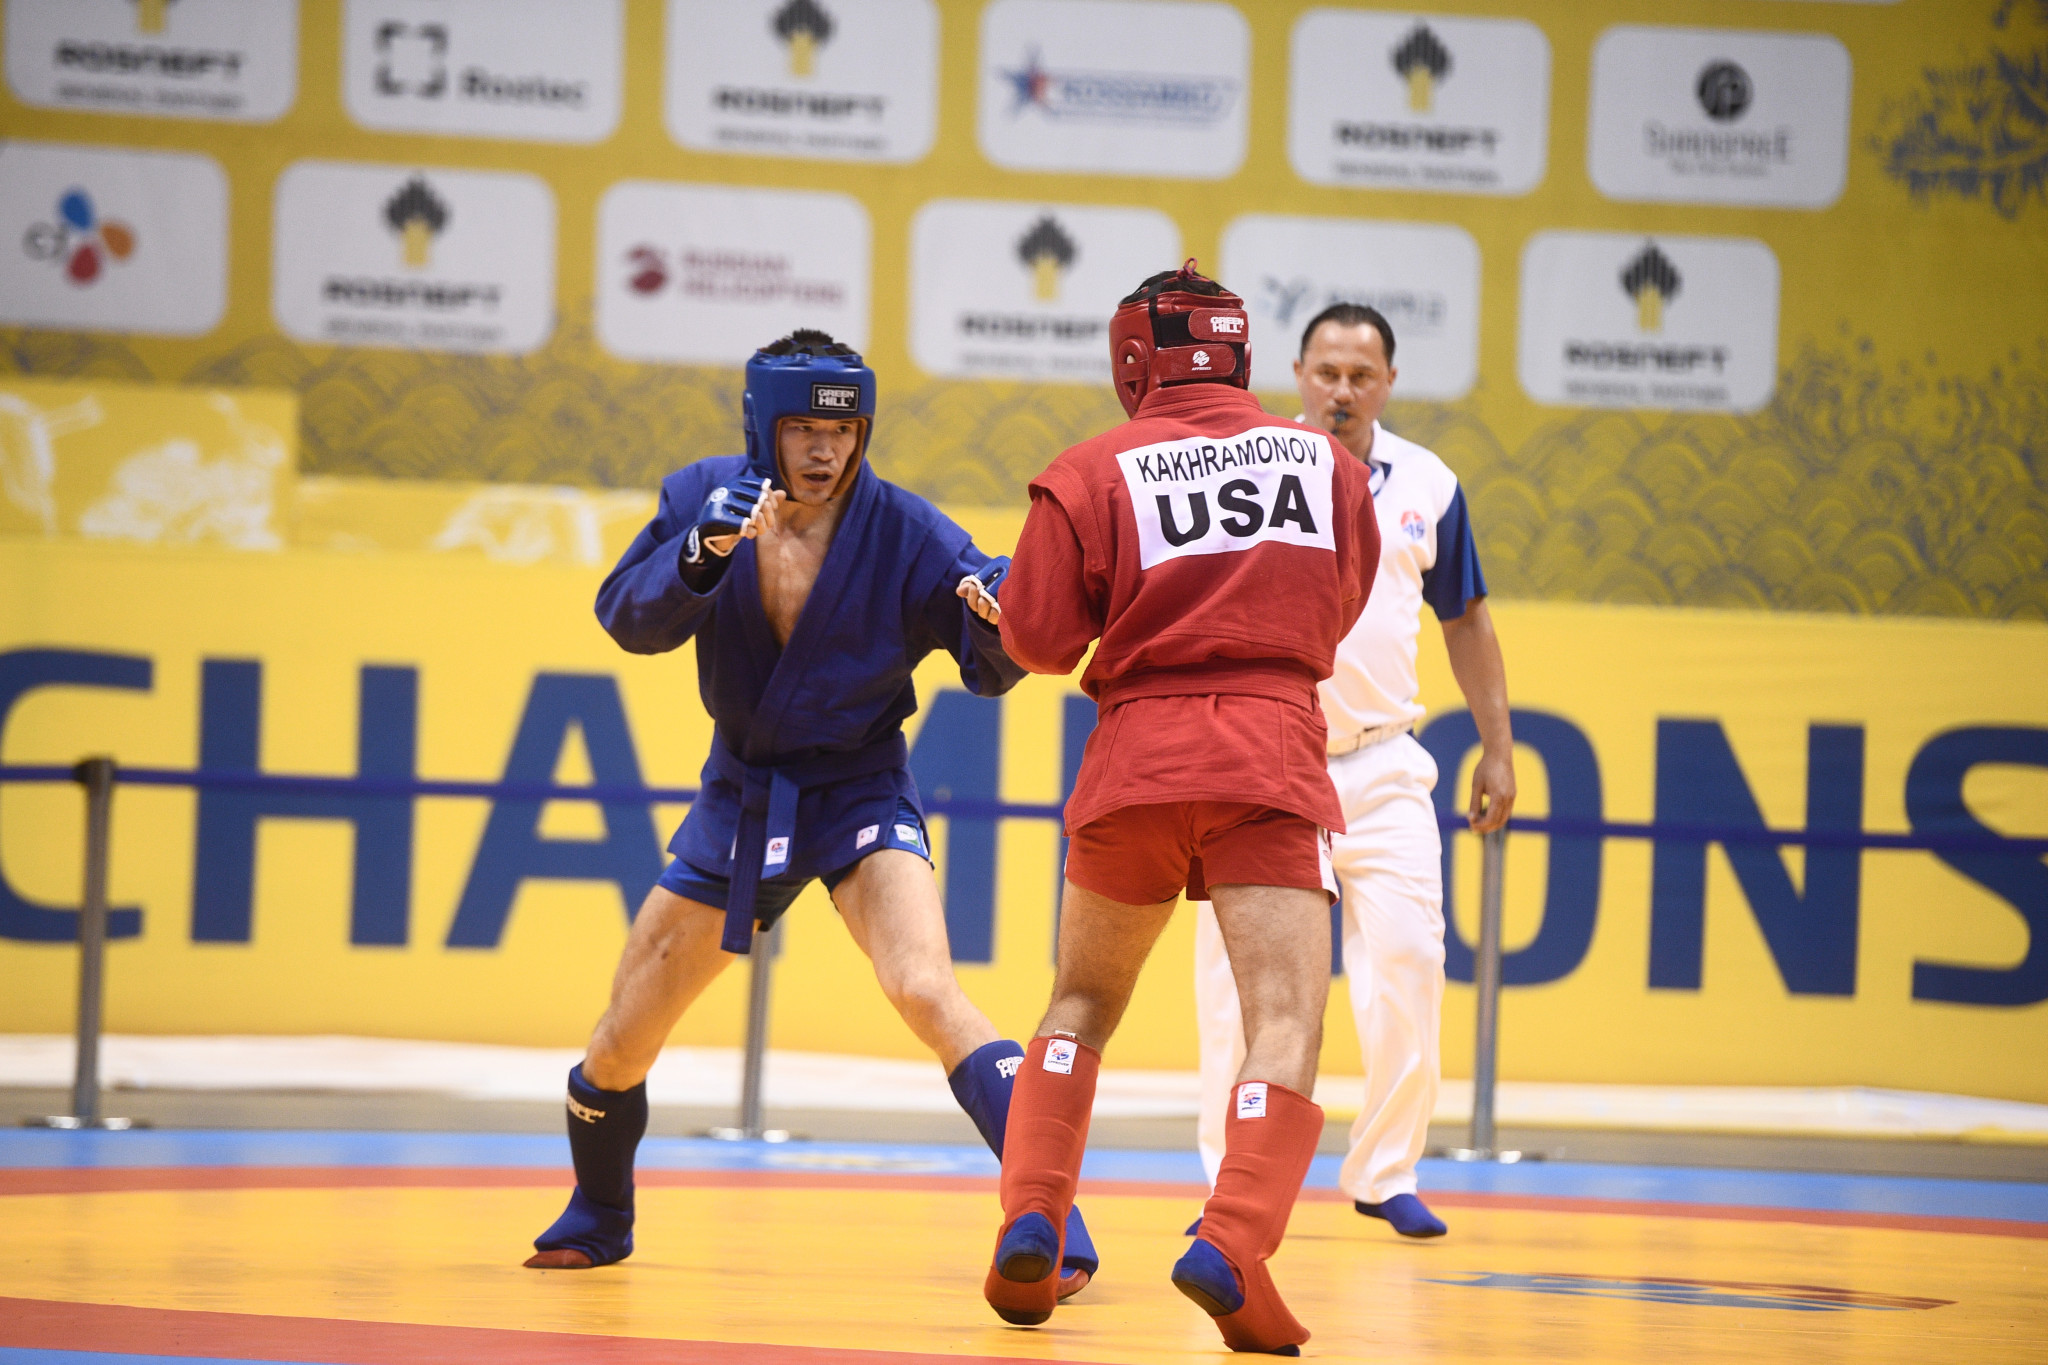 Saidyokub Kahkramonov won the first bronze medal for the United States at the event ©FIAS